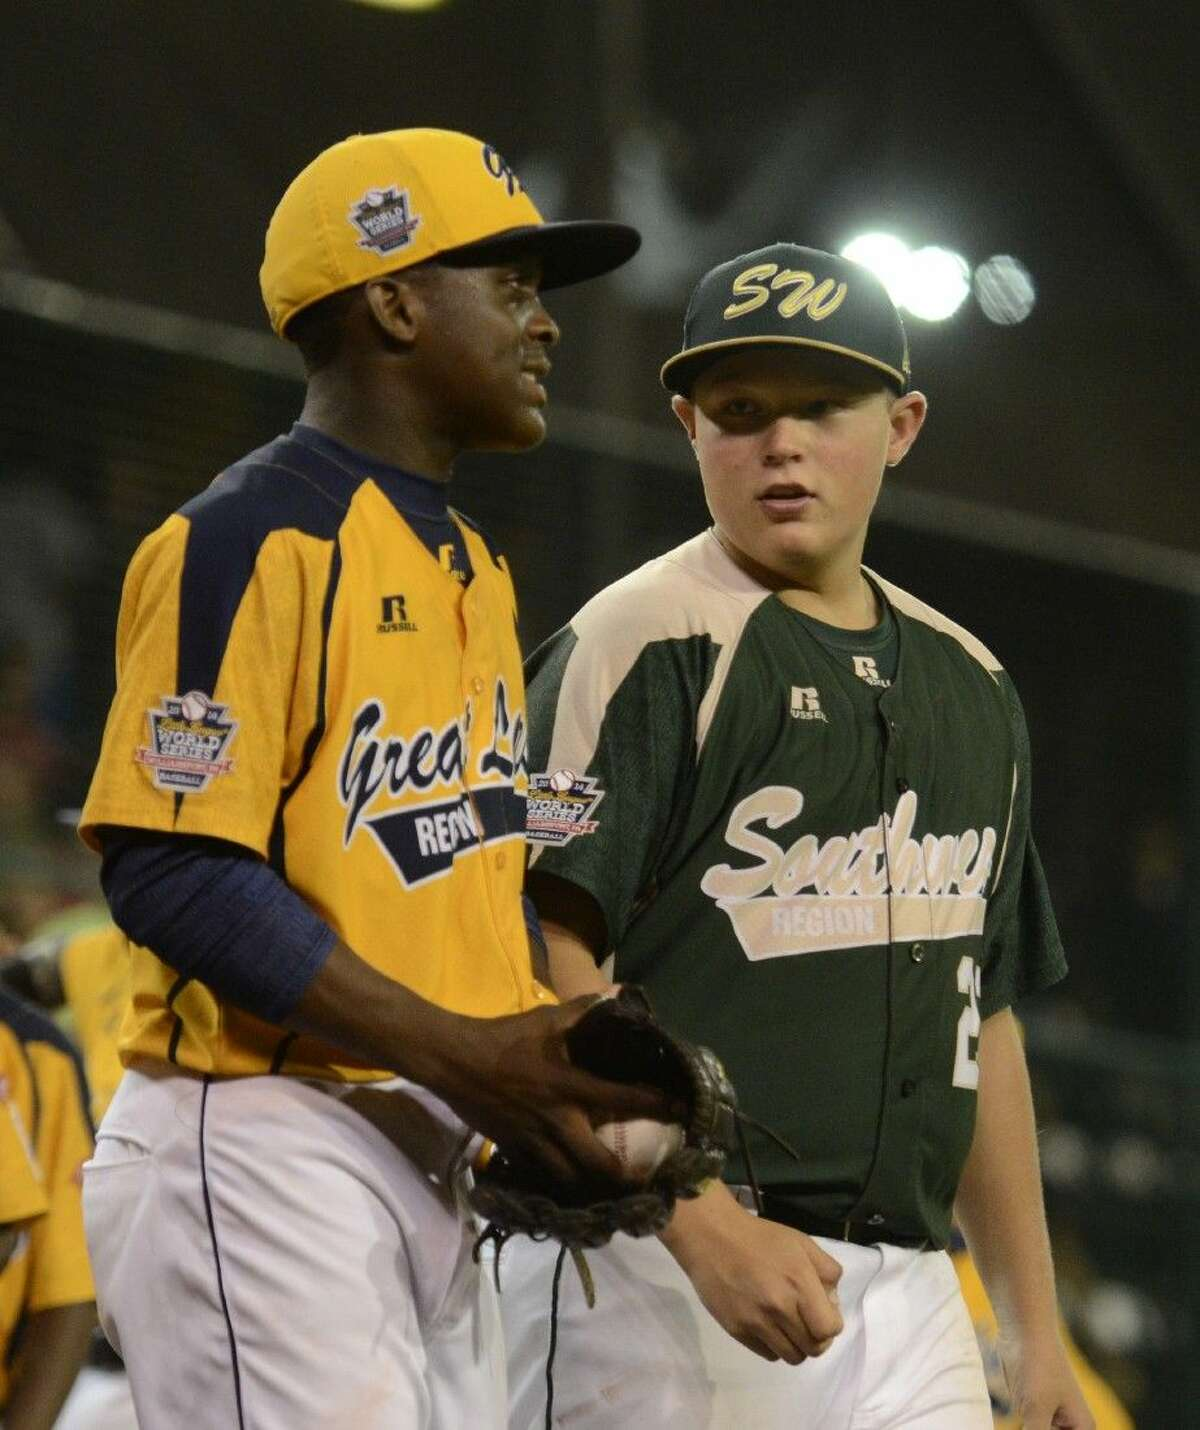 Walter Maeker III (21) congratulates Great Lakes pitcher Joshua Houston at the end of Tuesday's Little League World Series game in Williamsport, Pa. on August 19, 2014. (Ralph Wilson)